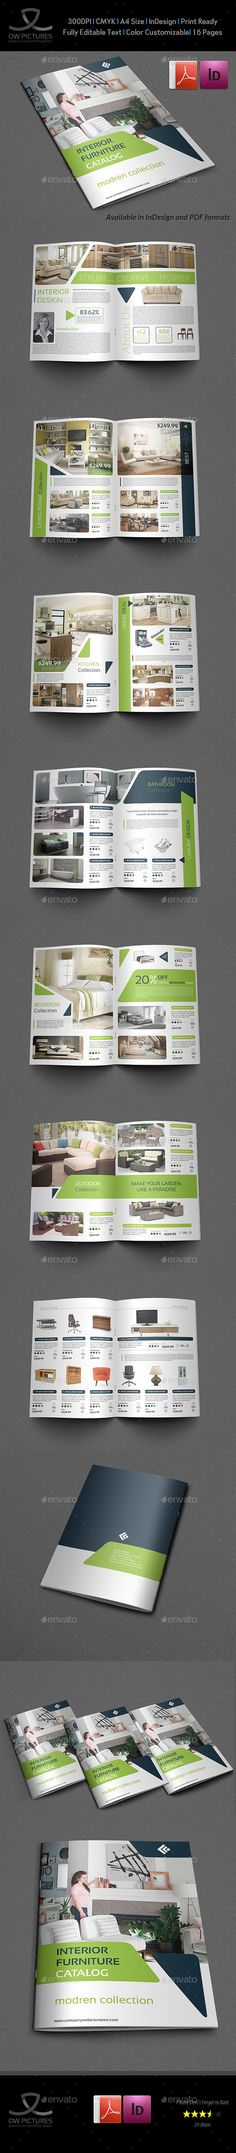 Products Catalogs Brochure 16 Pages Templates InDesign INDD. Download here: http://graphicriver.net/item/products-catalogs-brochure-template-vol4-16-pages/16355323?ref=ksioks